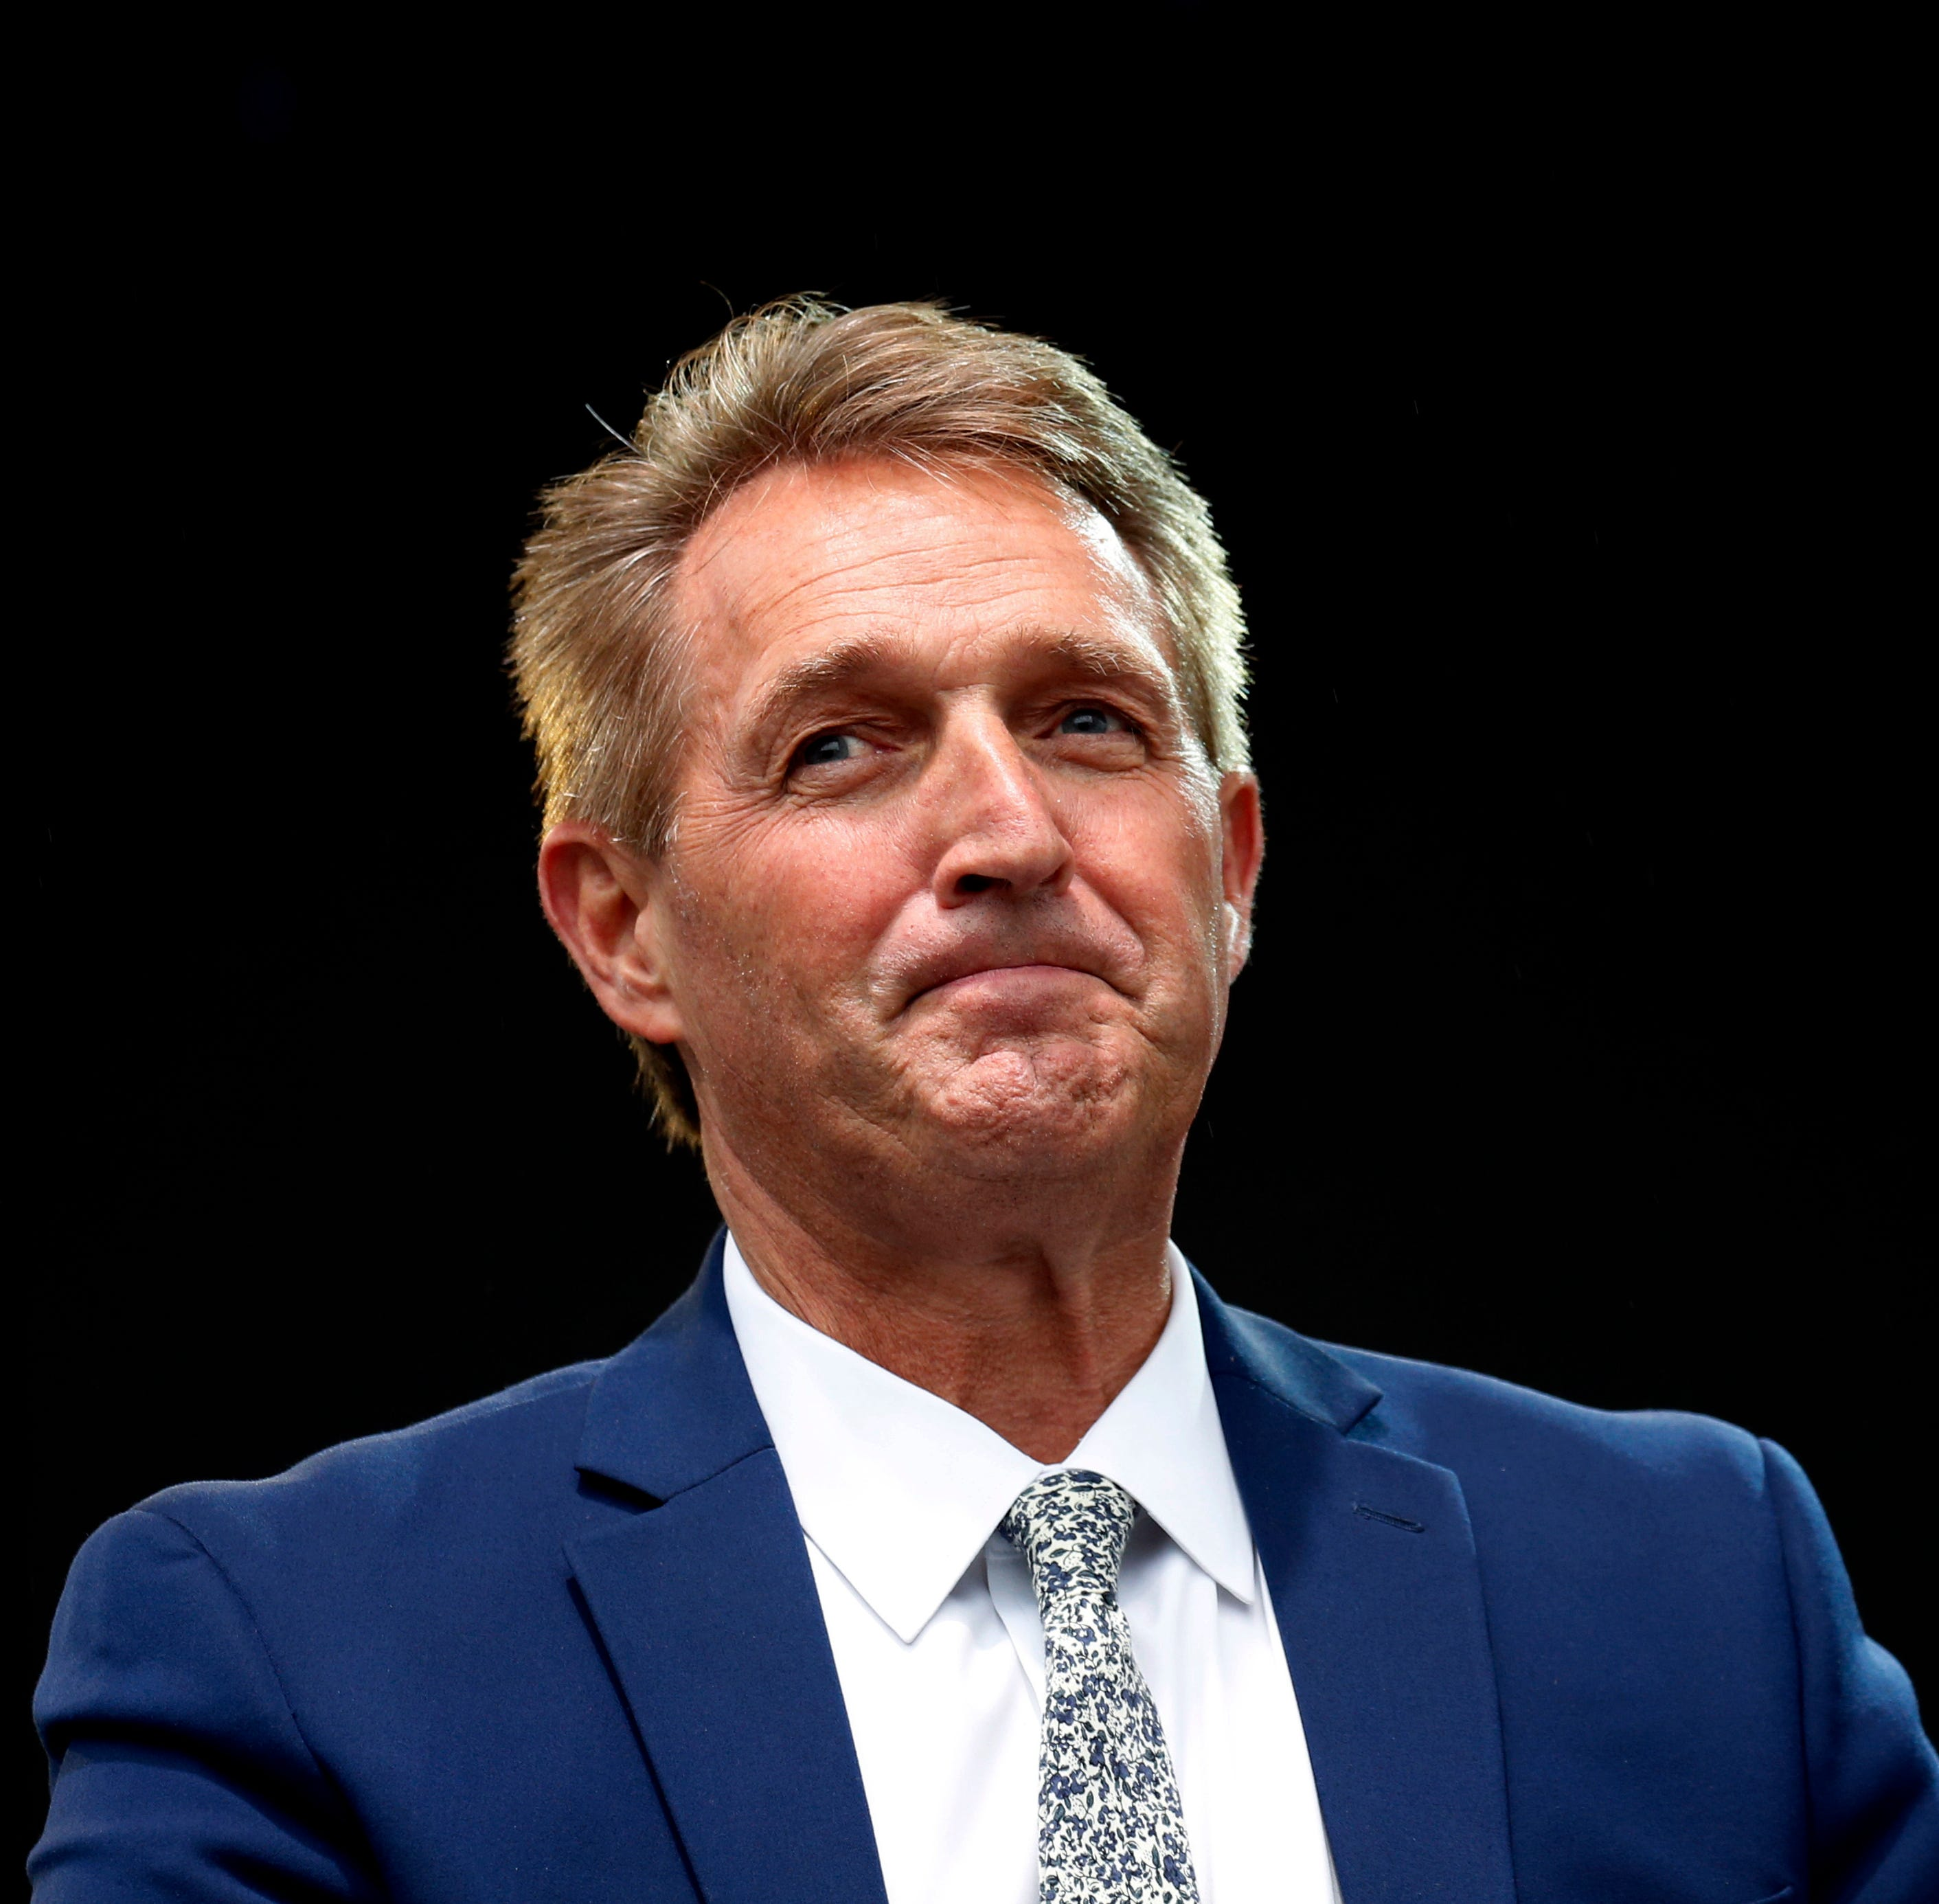 Jeff Flake won't challenge Donald Trump. What a shame